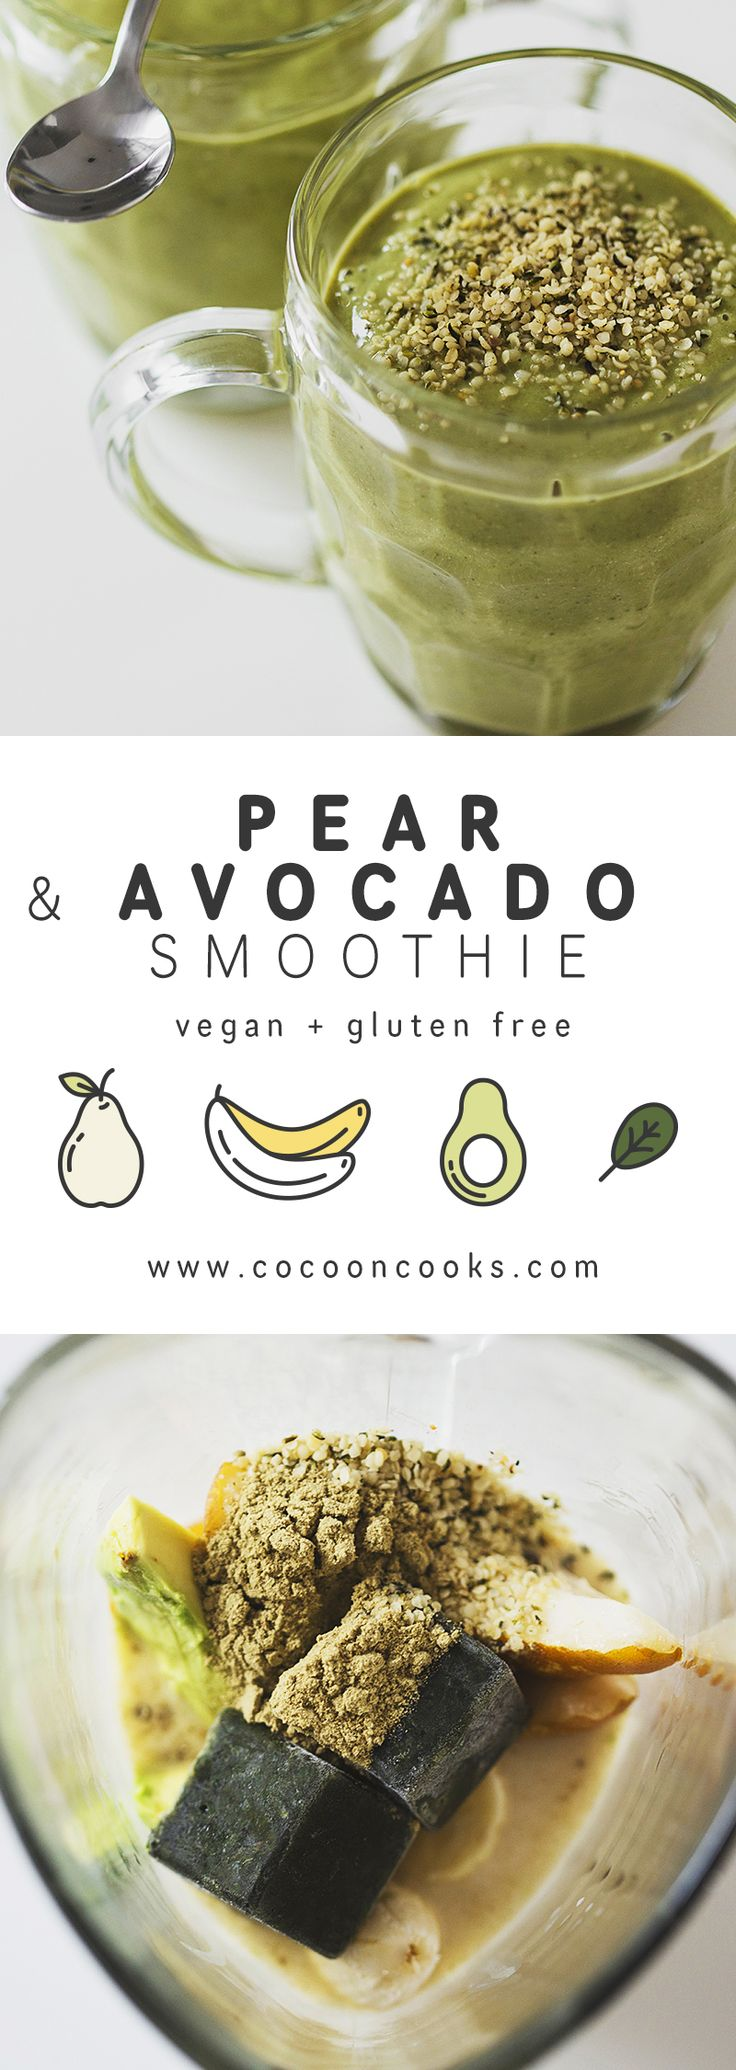 Pear + Avocado Smoothie